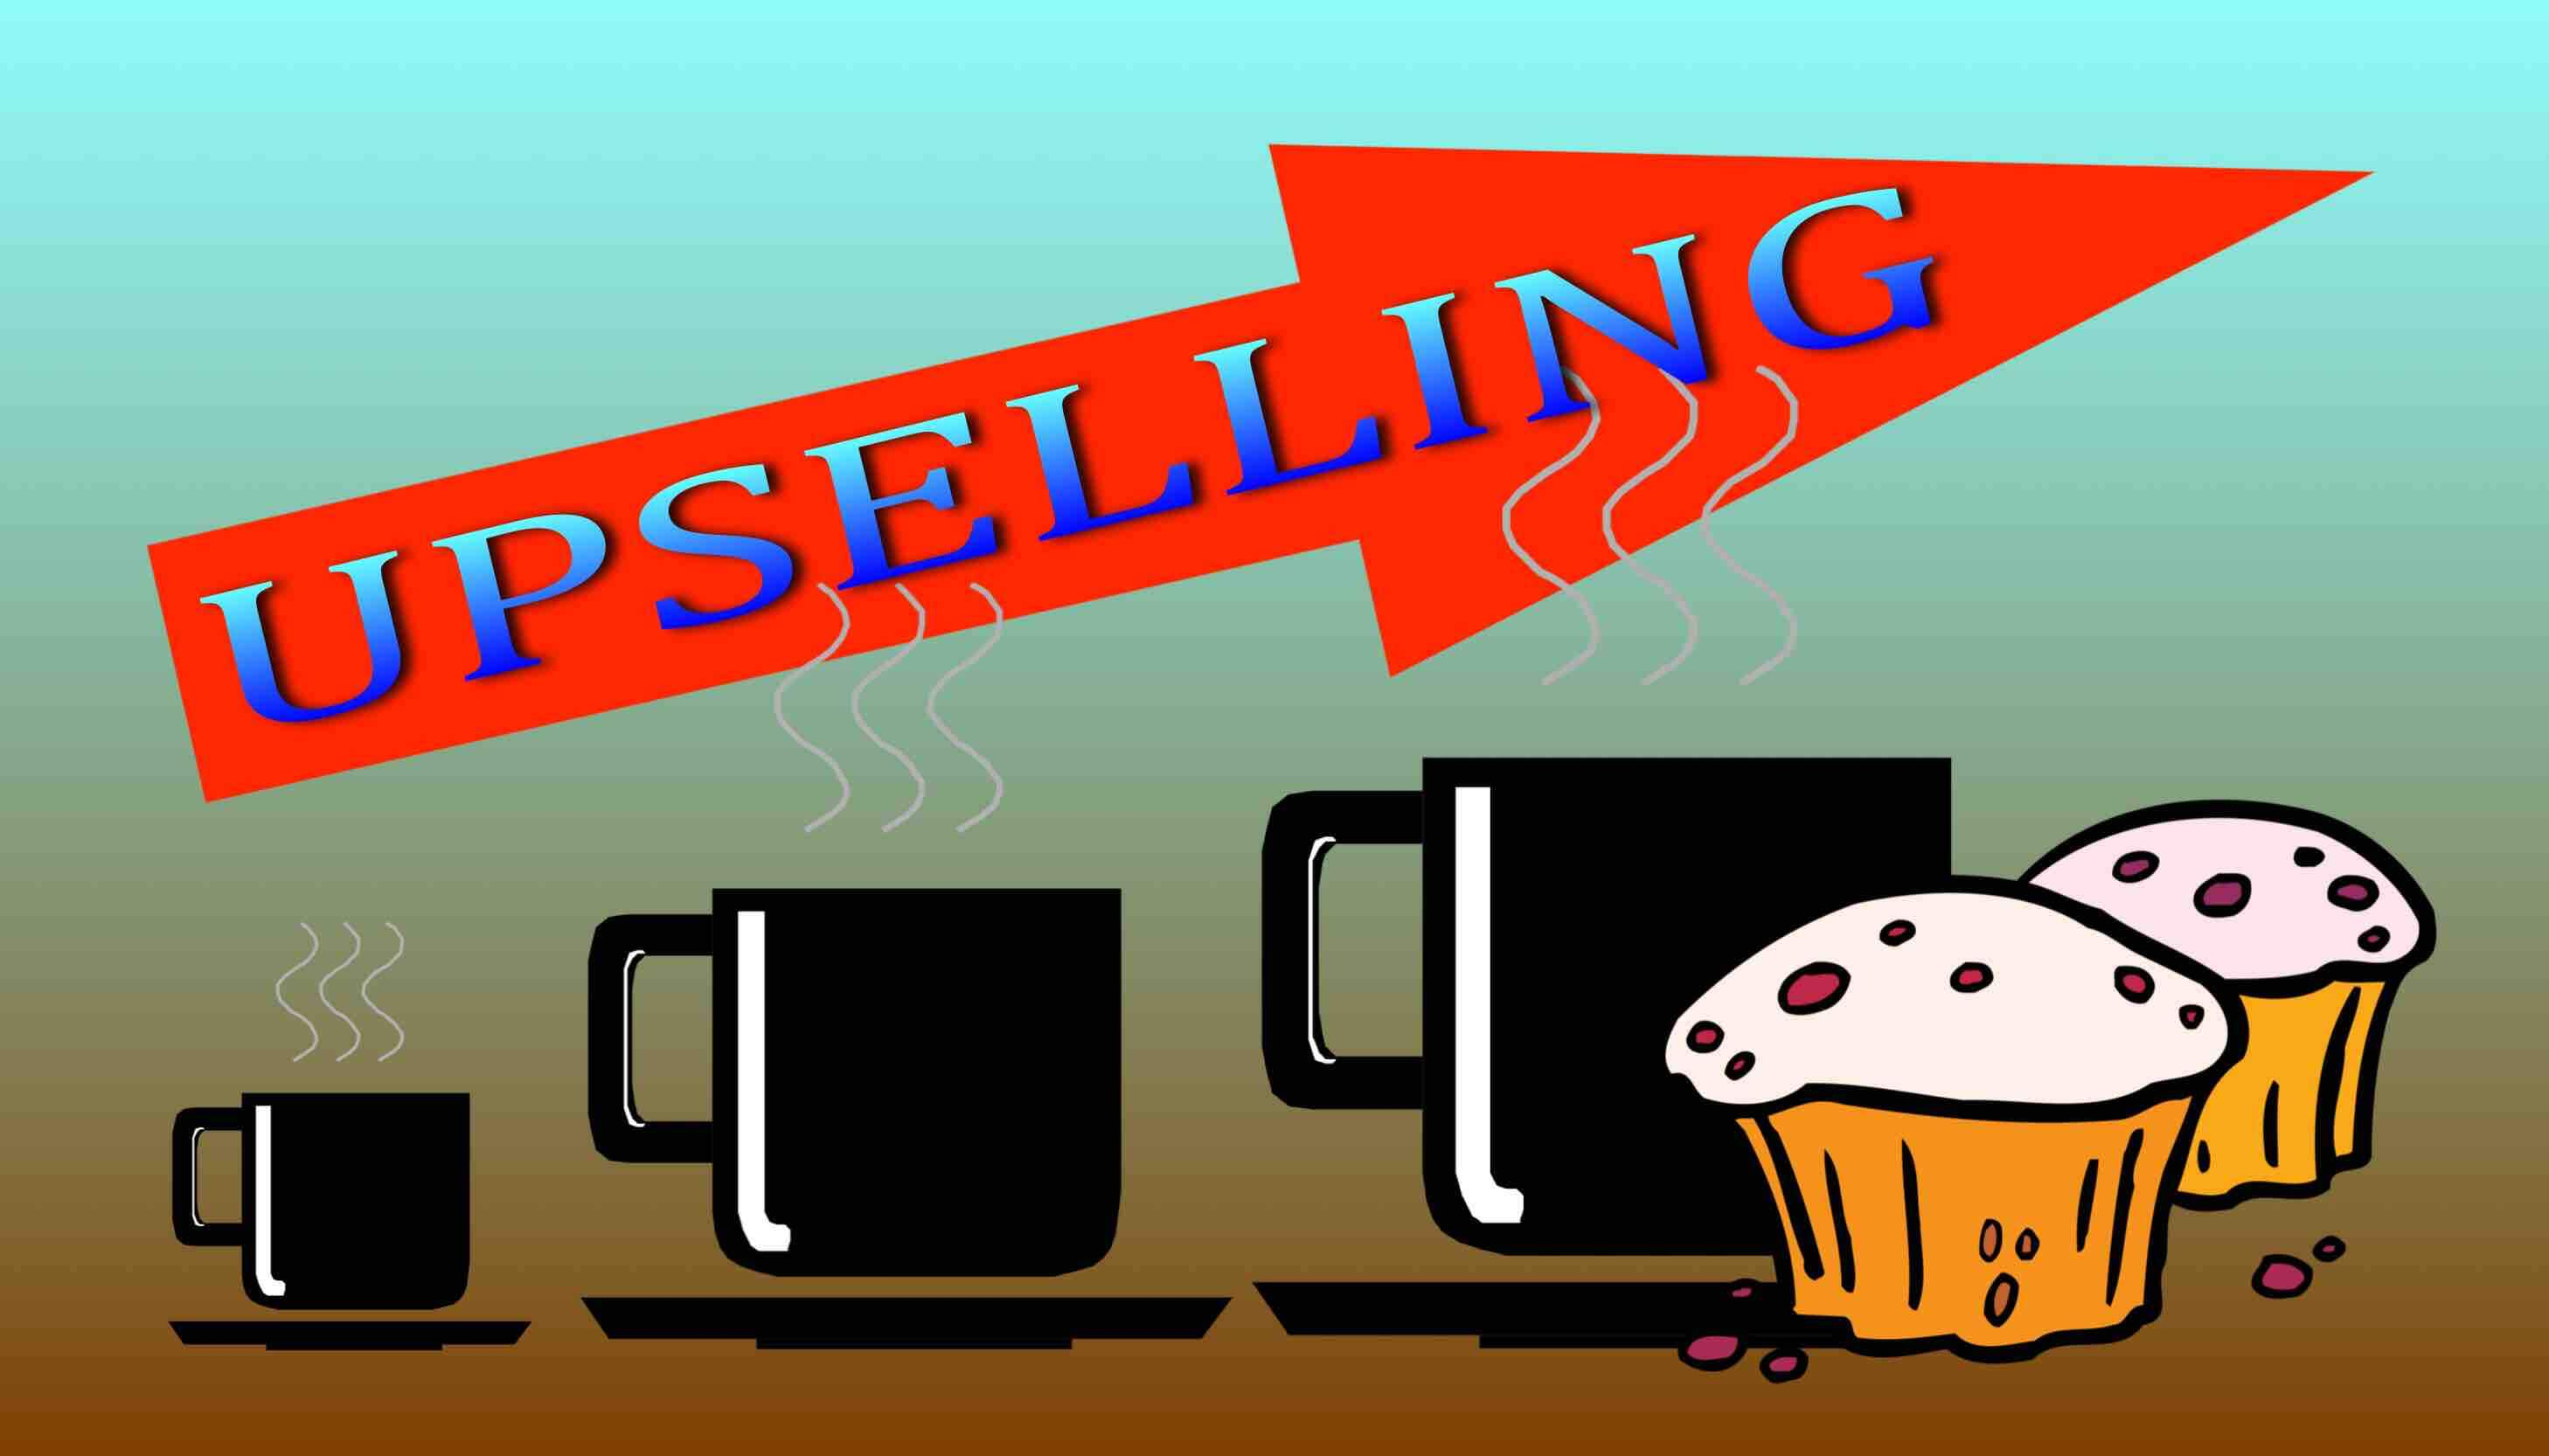 Upselling techniques in coffee shops